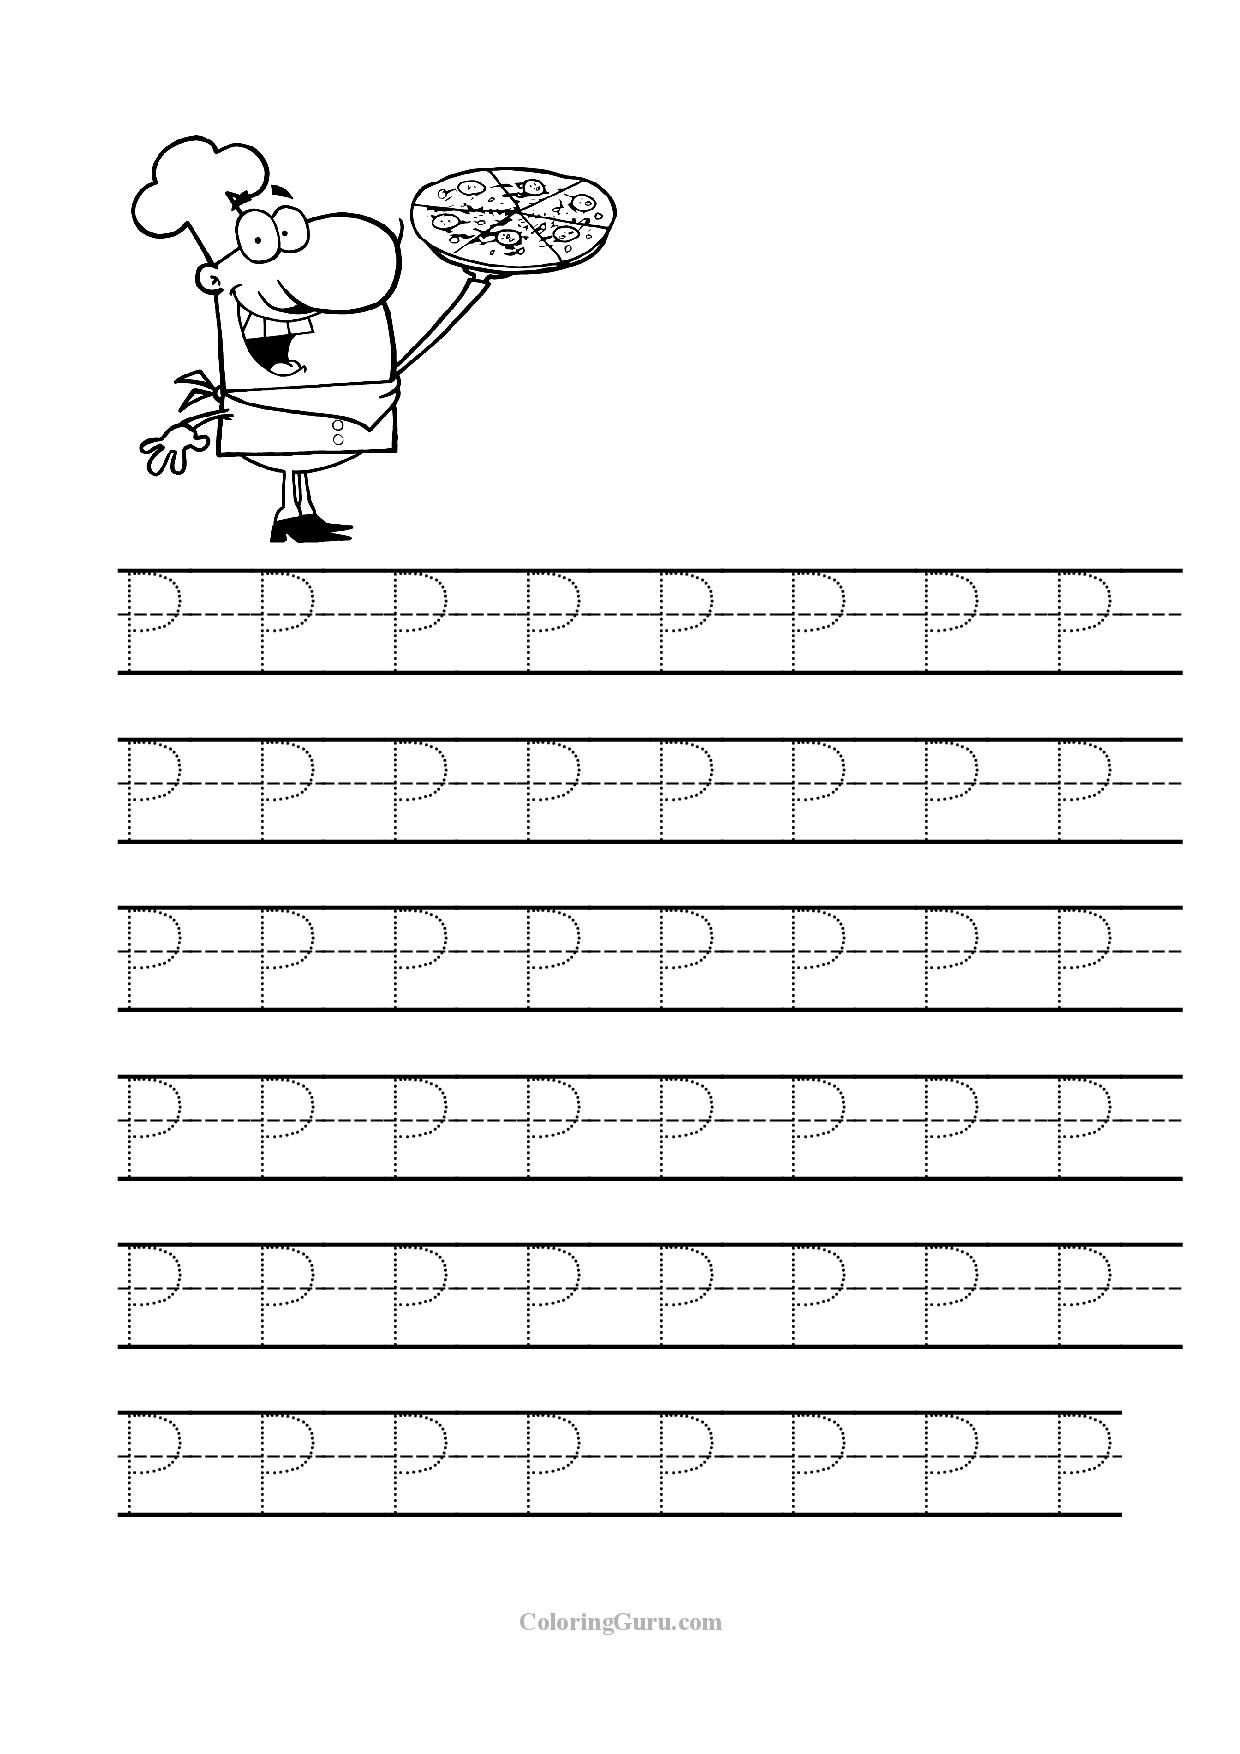 Free Printable Tracing Letter P Worksheets For Preschool | Tracing - Letter P Puzzle Printable